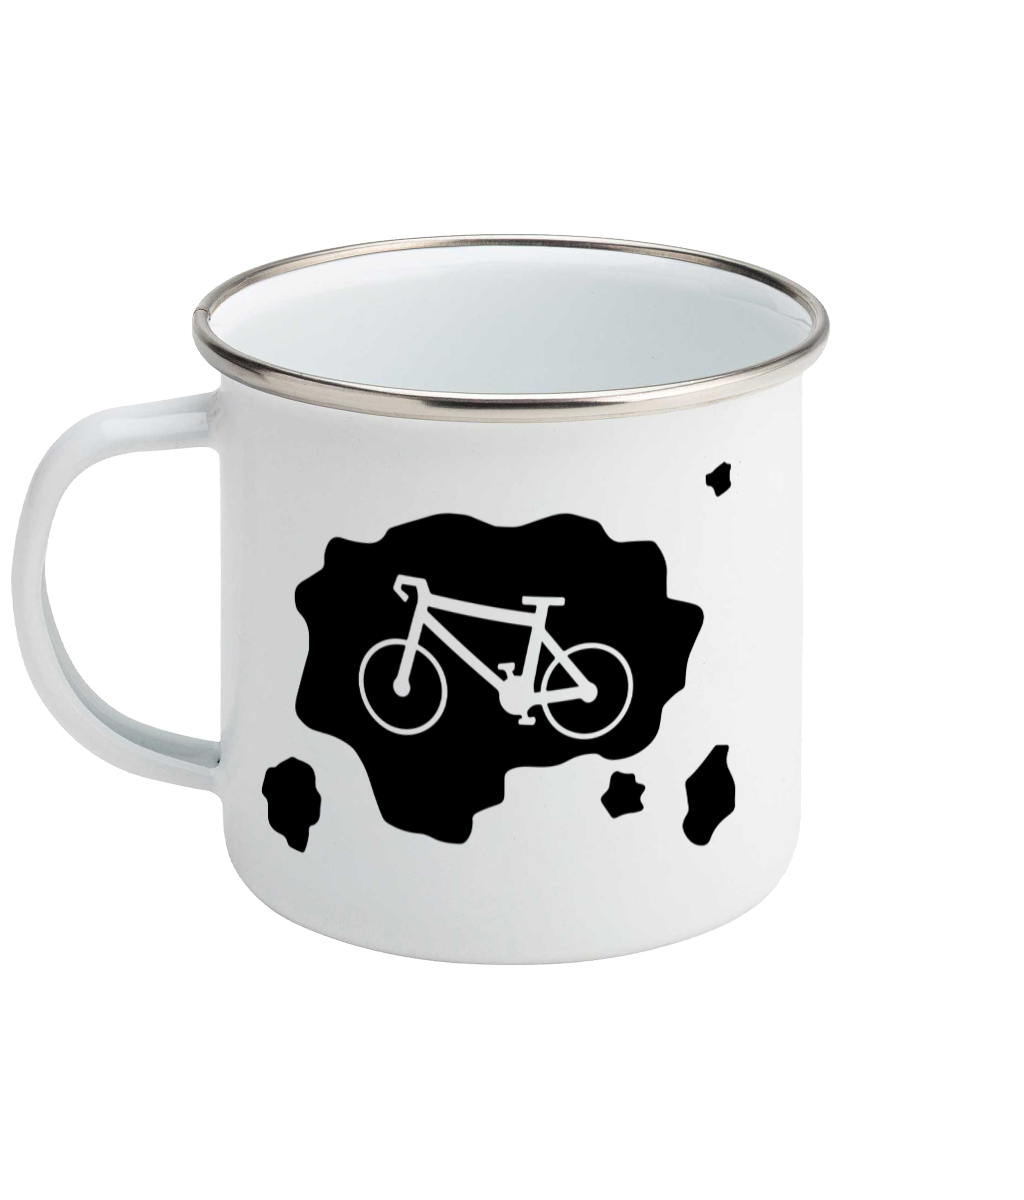 Mud Cycle - Enamel Mug, Suggested Products, Pen and Ink Studios Adventure Clothing